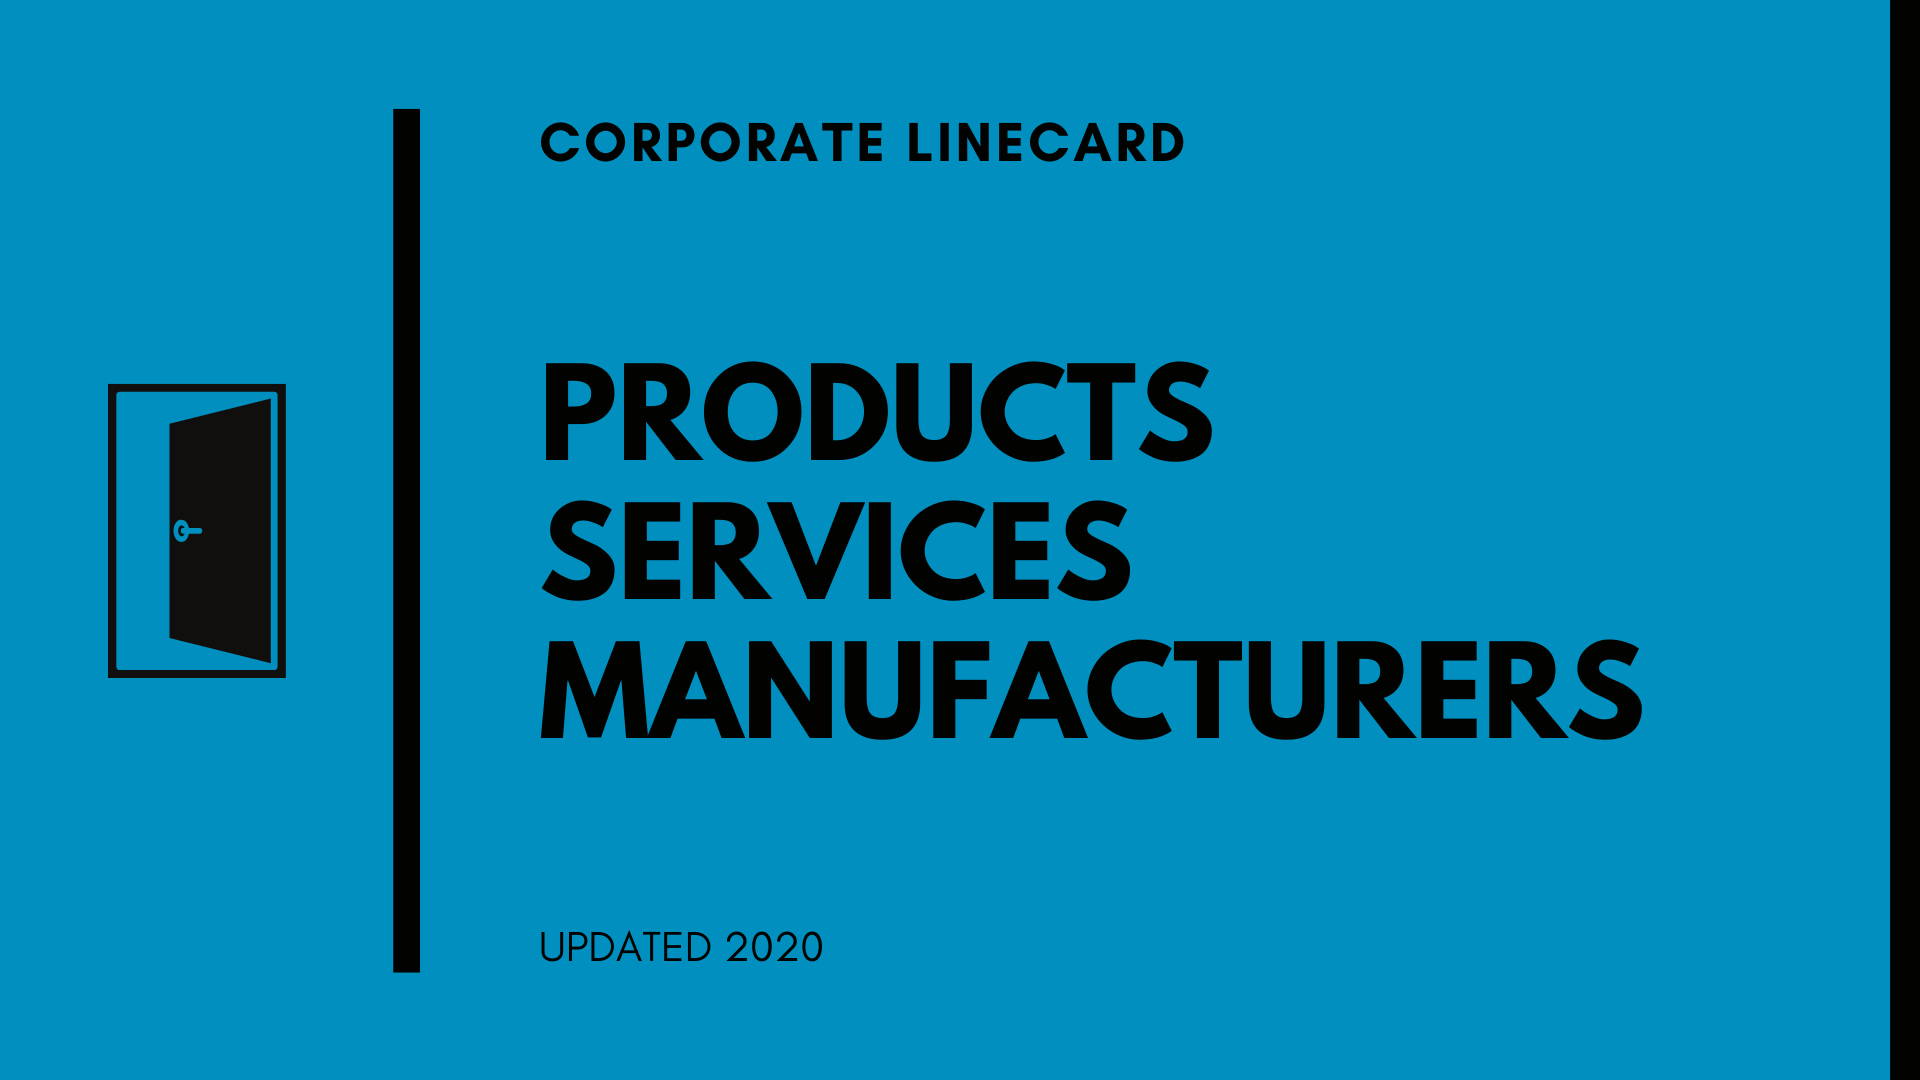 Linecard: Products, Services and Manufacturers